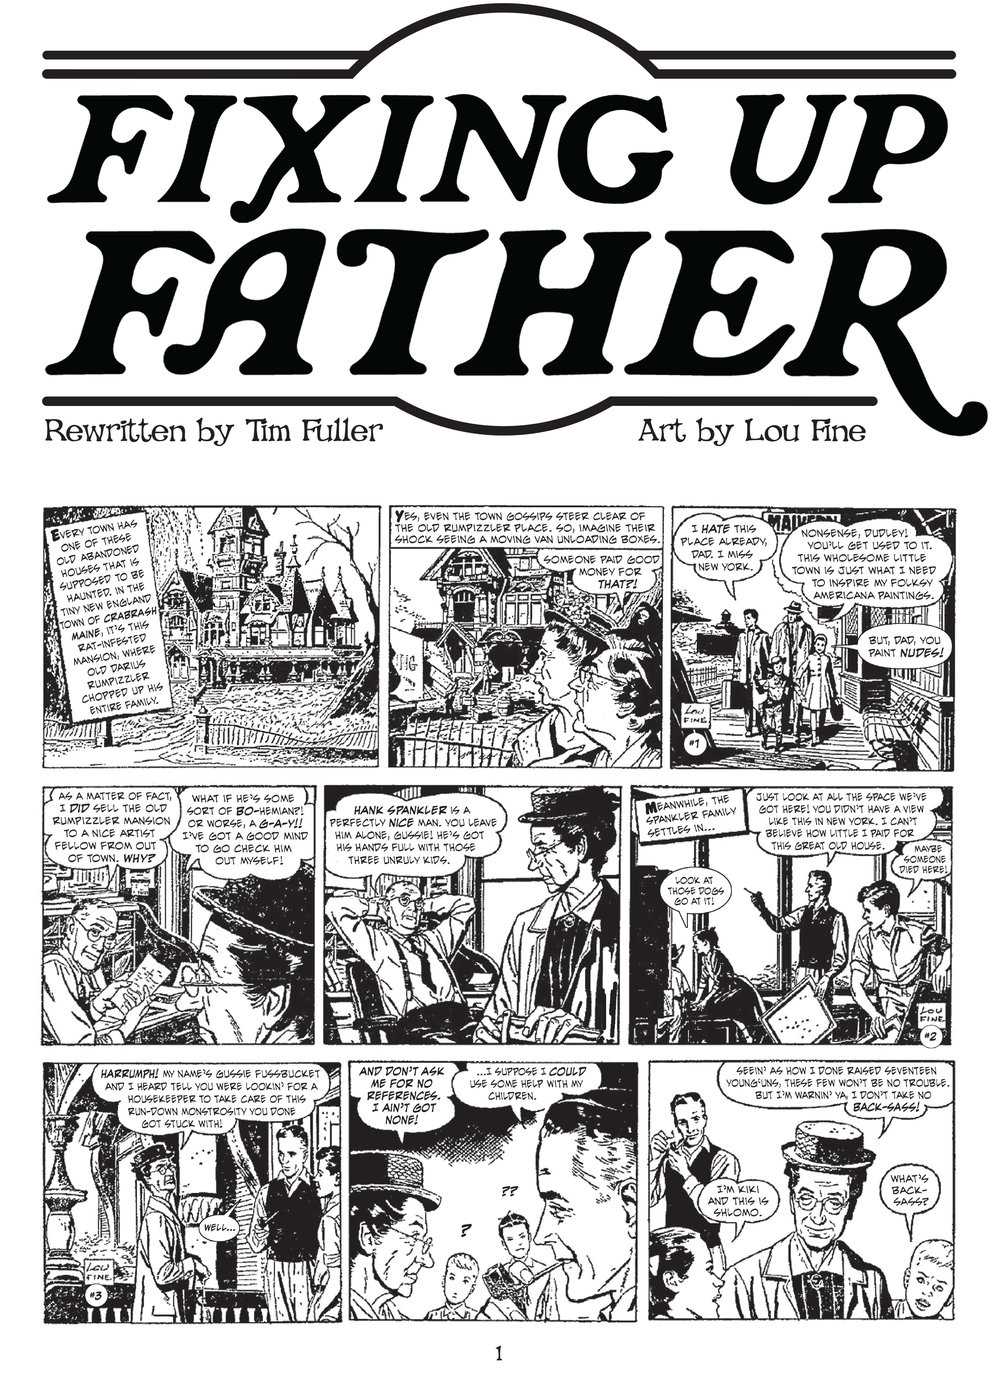 Weekly Sham #1-7 (Fixing Up Father)-1.jpg